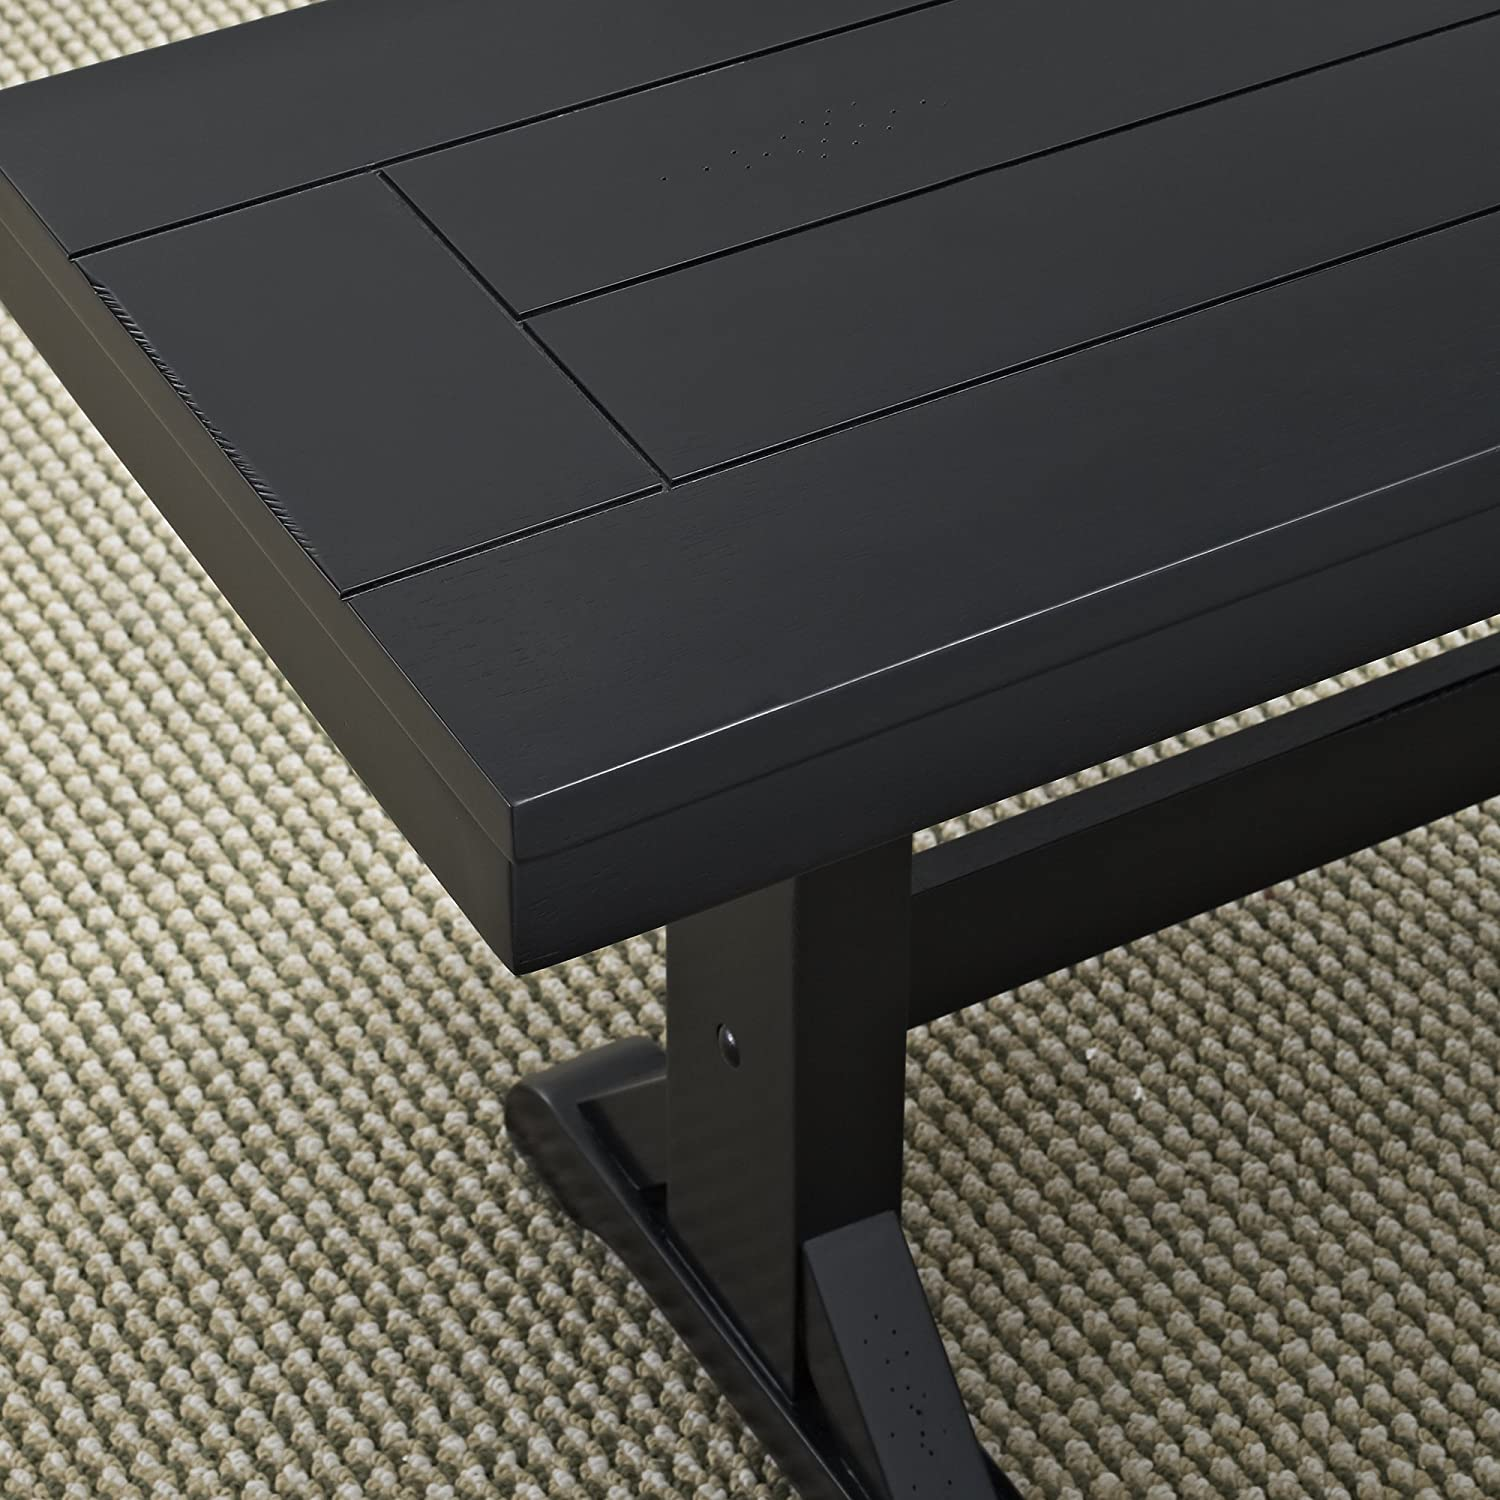 New 5 Foot Wide Solid Wood Dining Bench in Black Finish